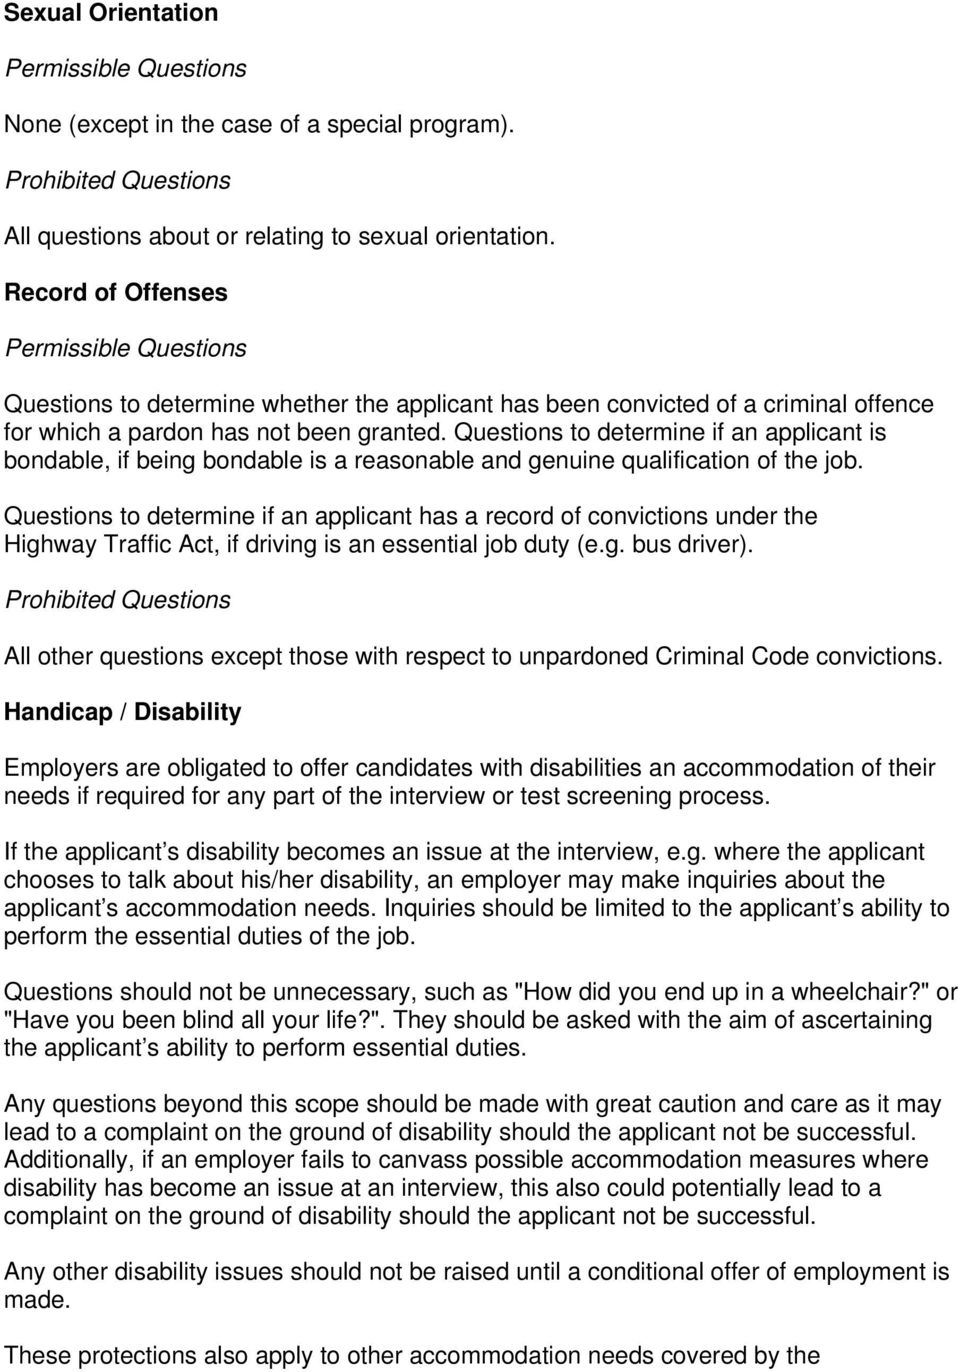 Appropriate Questions to ask in an Interview i - PDF